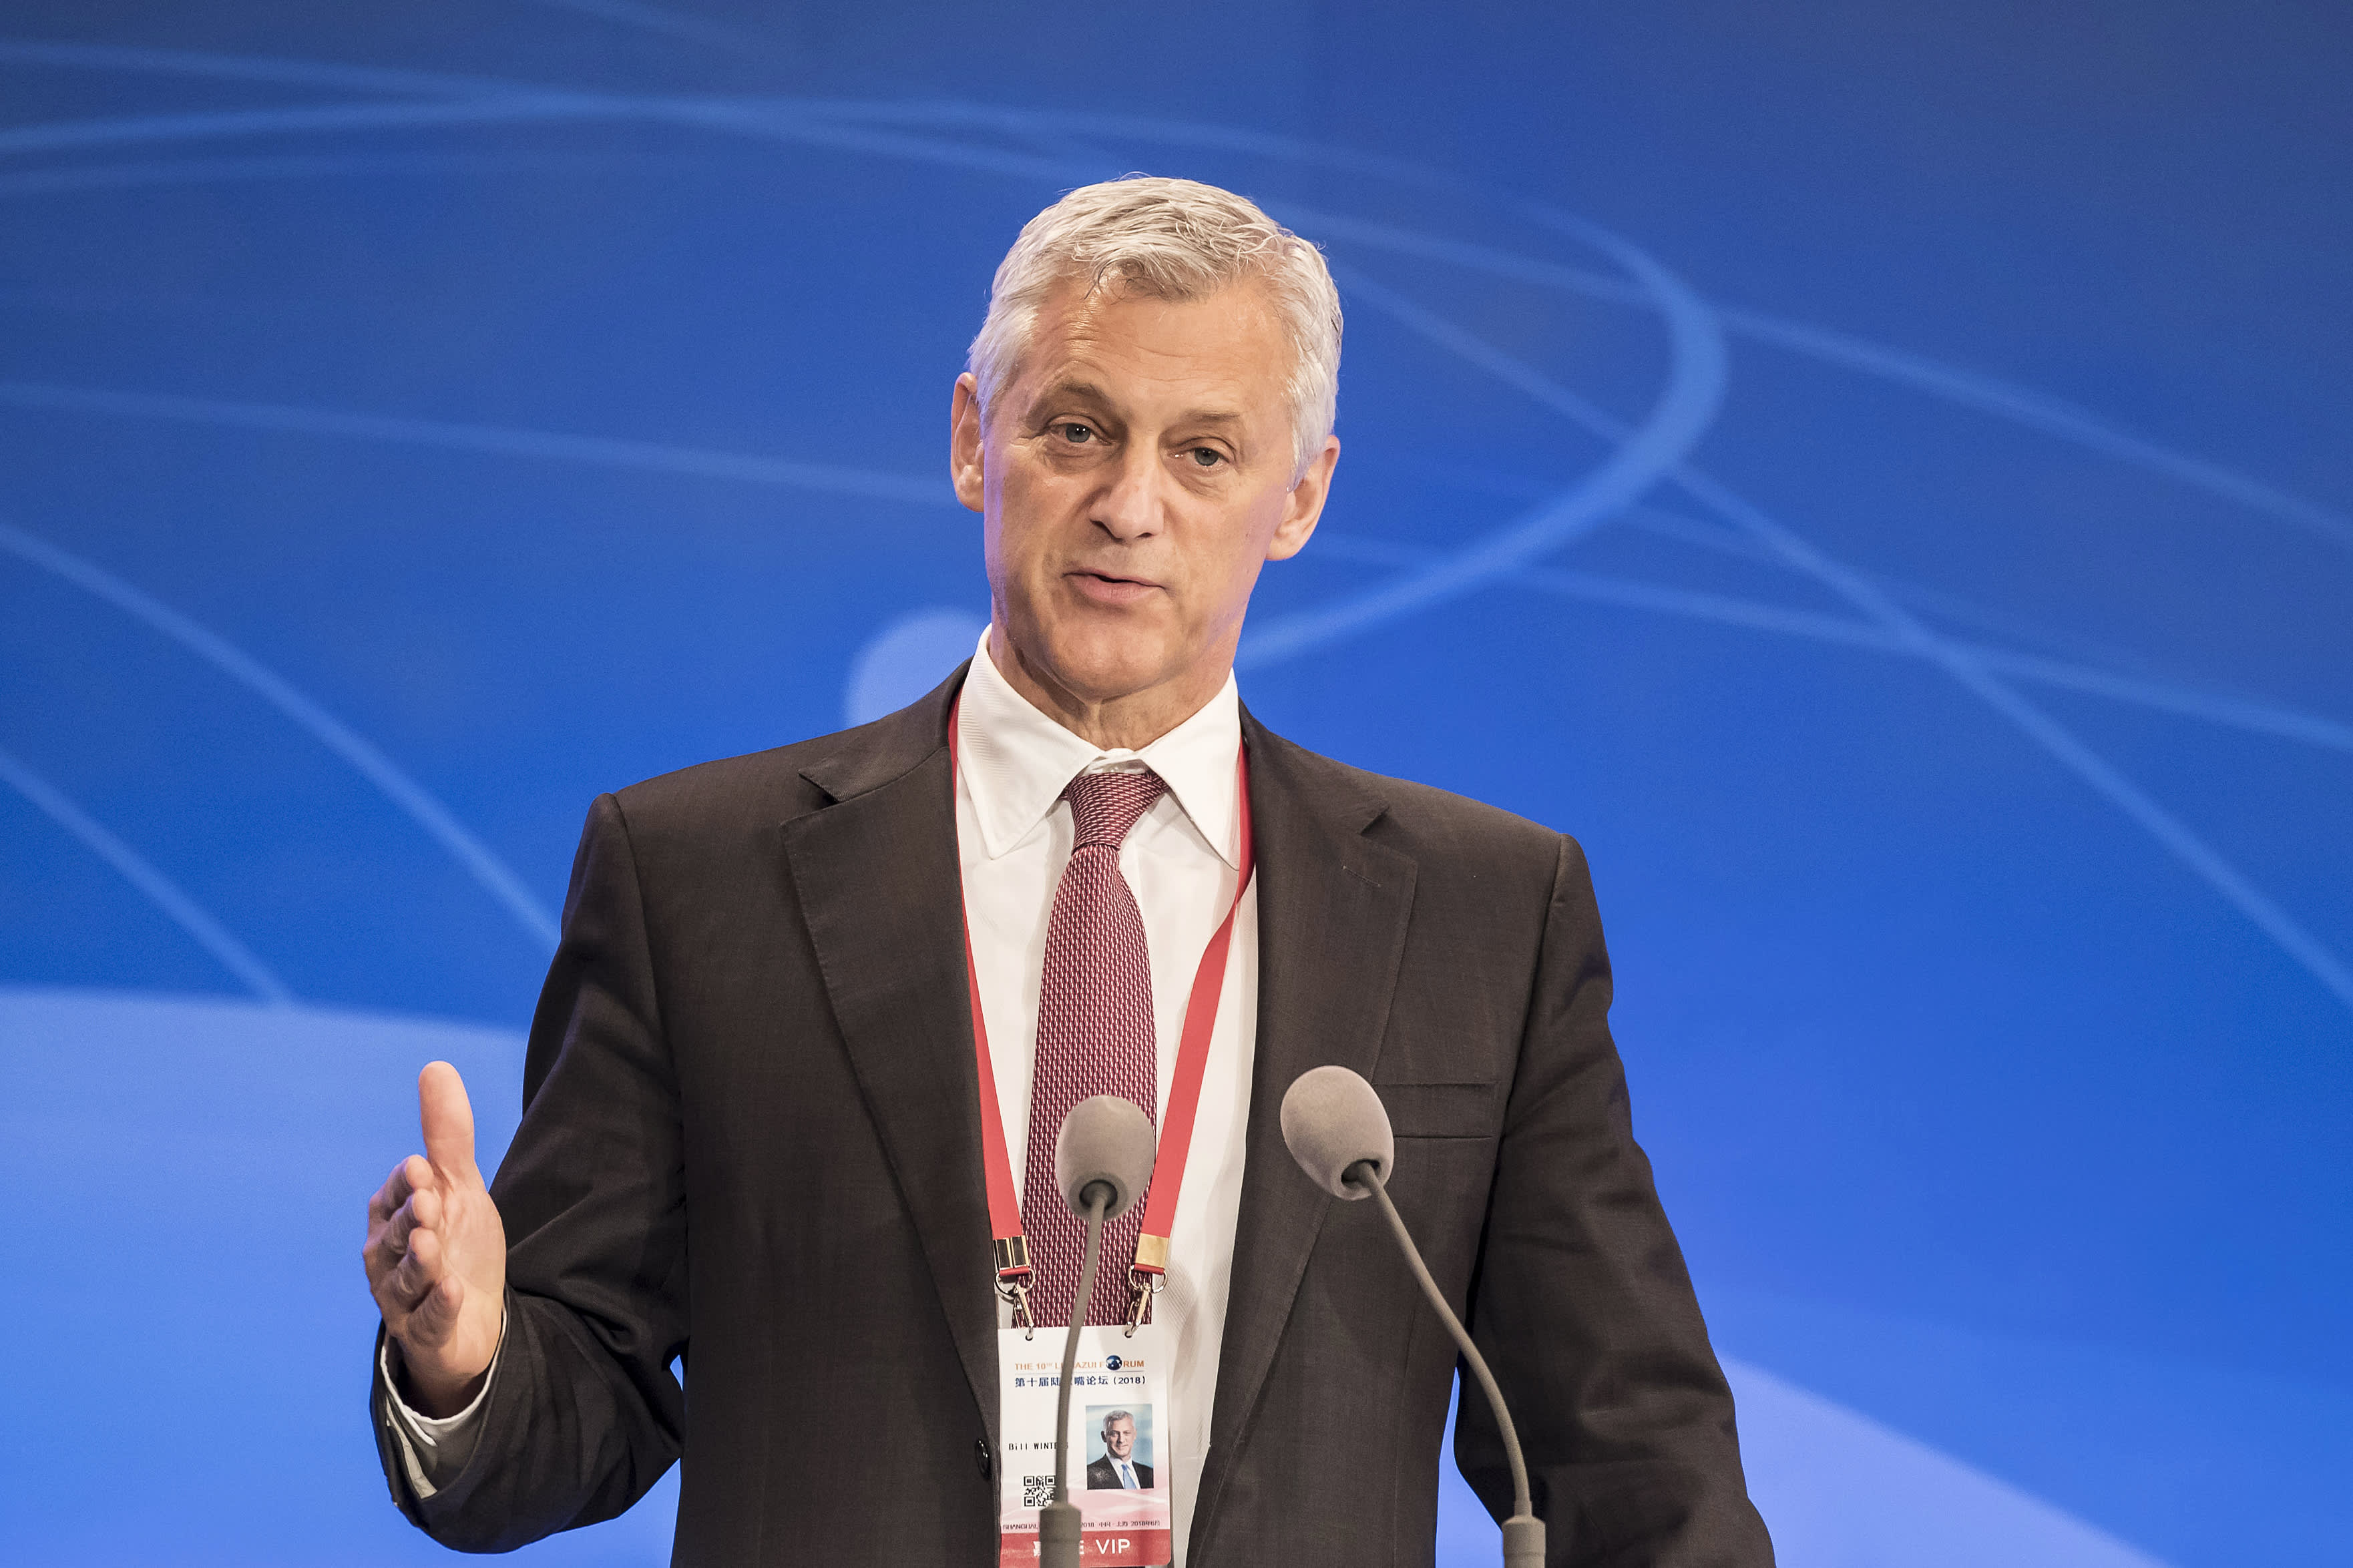 A 'growth rotation' from the US to the rest of the world is underway, Standard Chartered CEO says